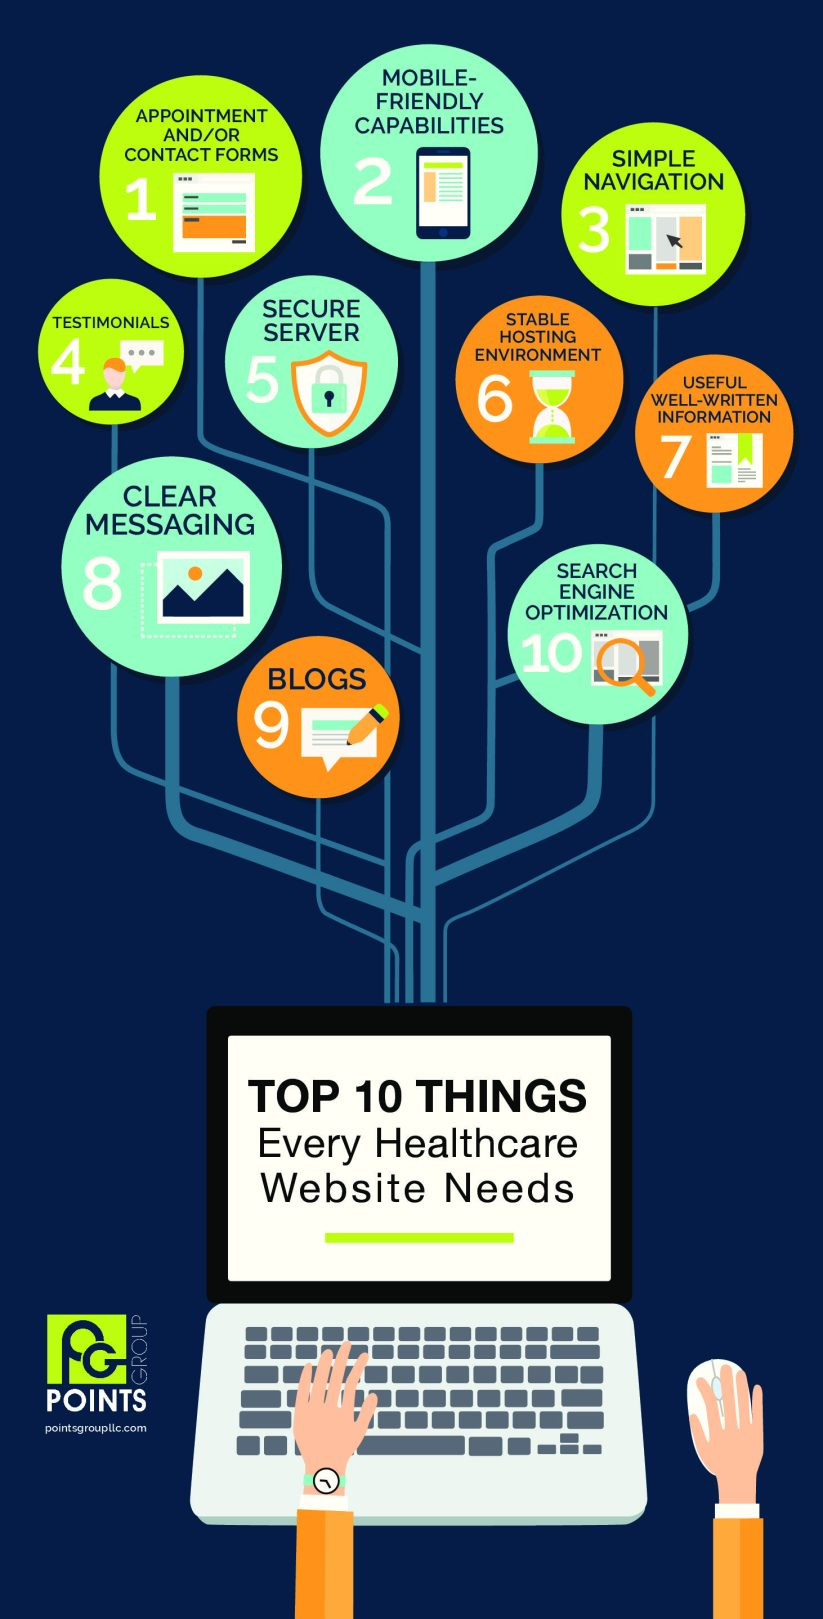 17-01-05_10_things_blog_infographic